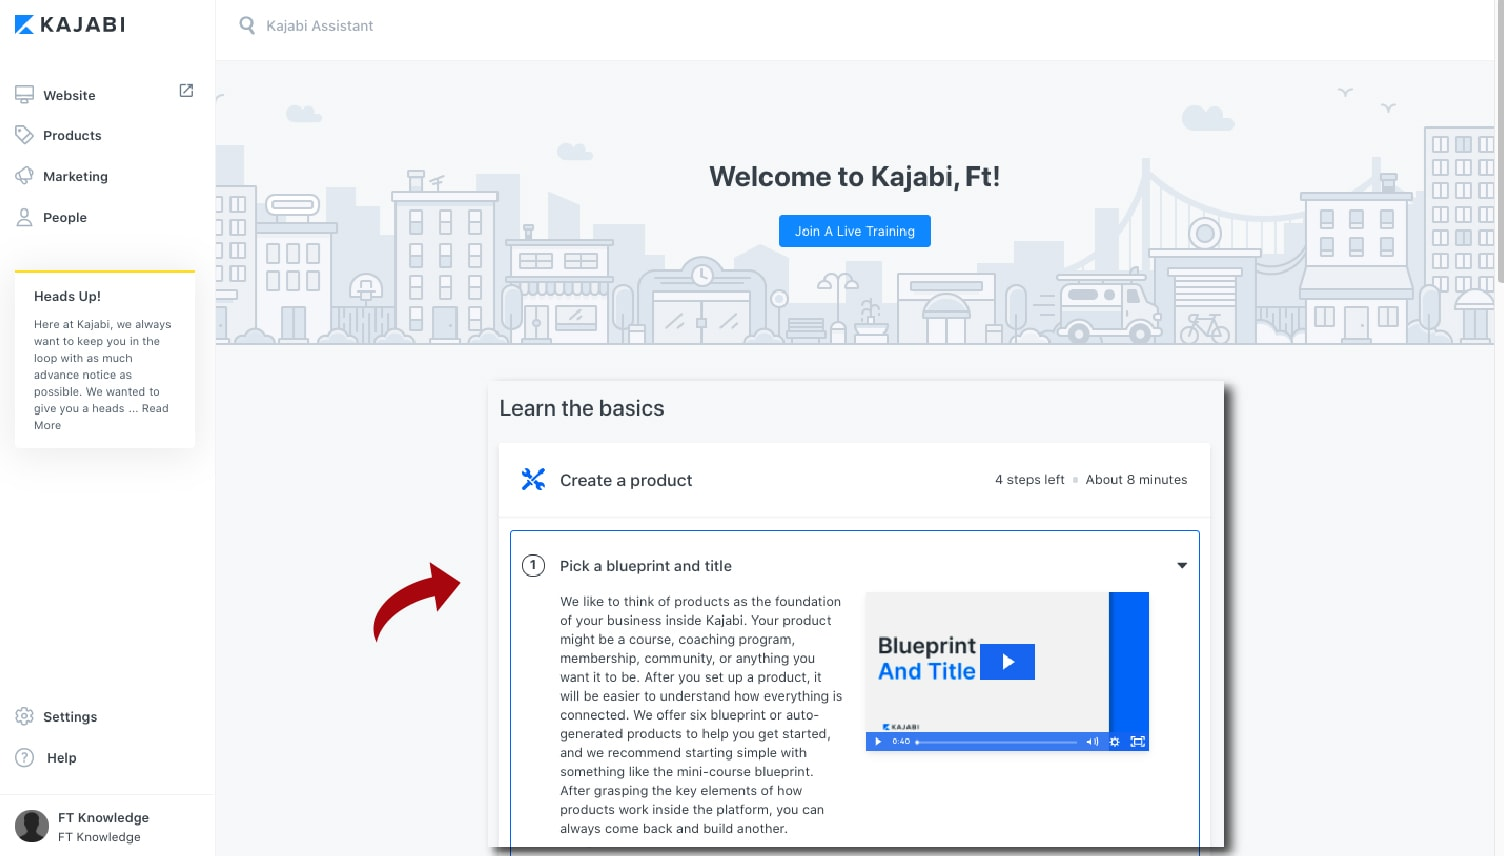 Content and Course Creation (Product Blueprint)